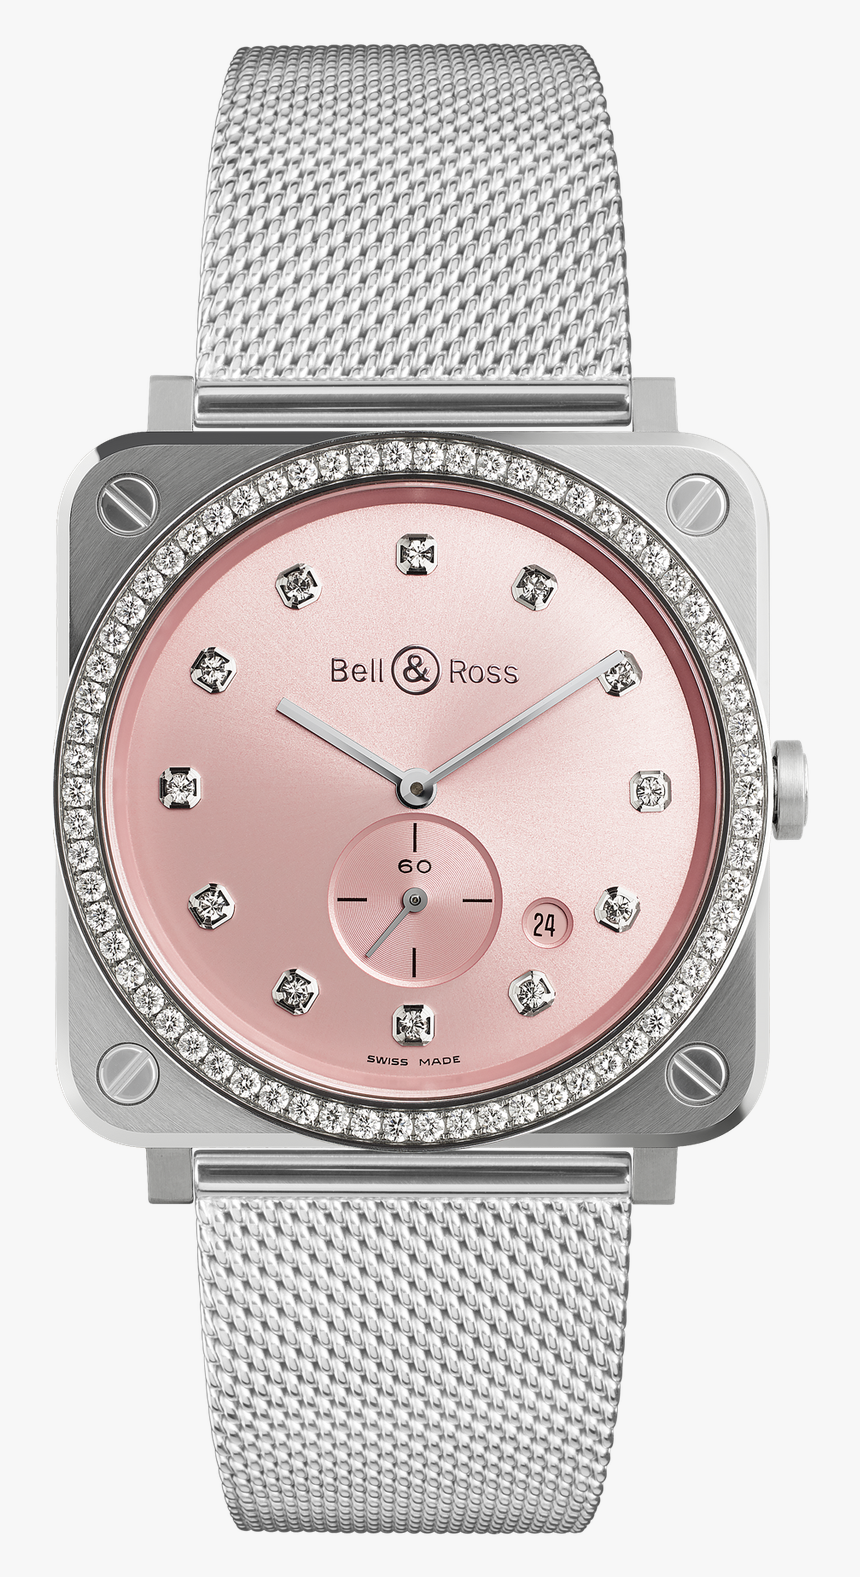 Bell And Ross Pink, HD Png Download, Free Download